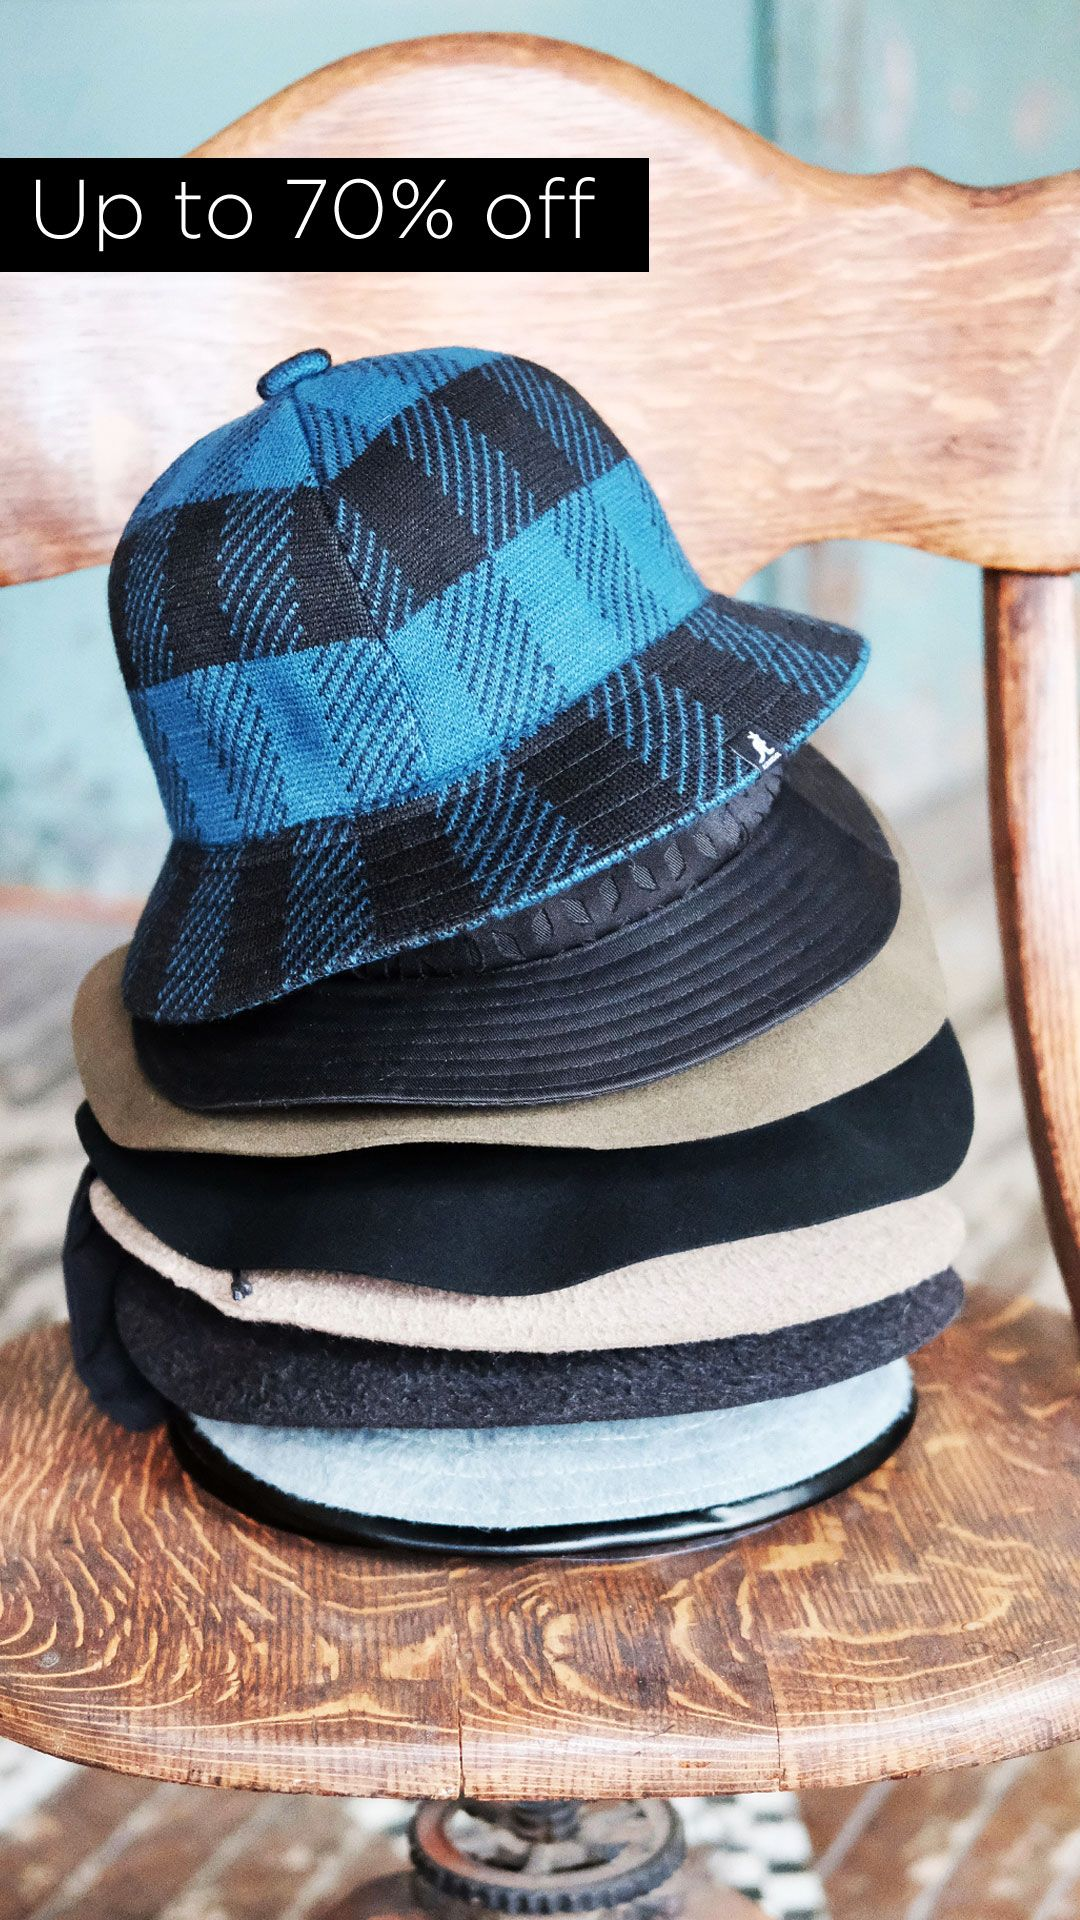 Pictured  Top of the stack - Kangol Frontier Casual and Hole Casual ... cfd52a12b5ef